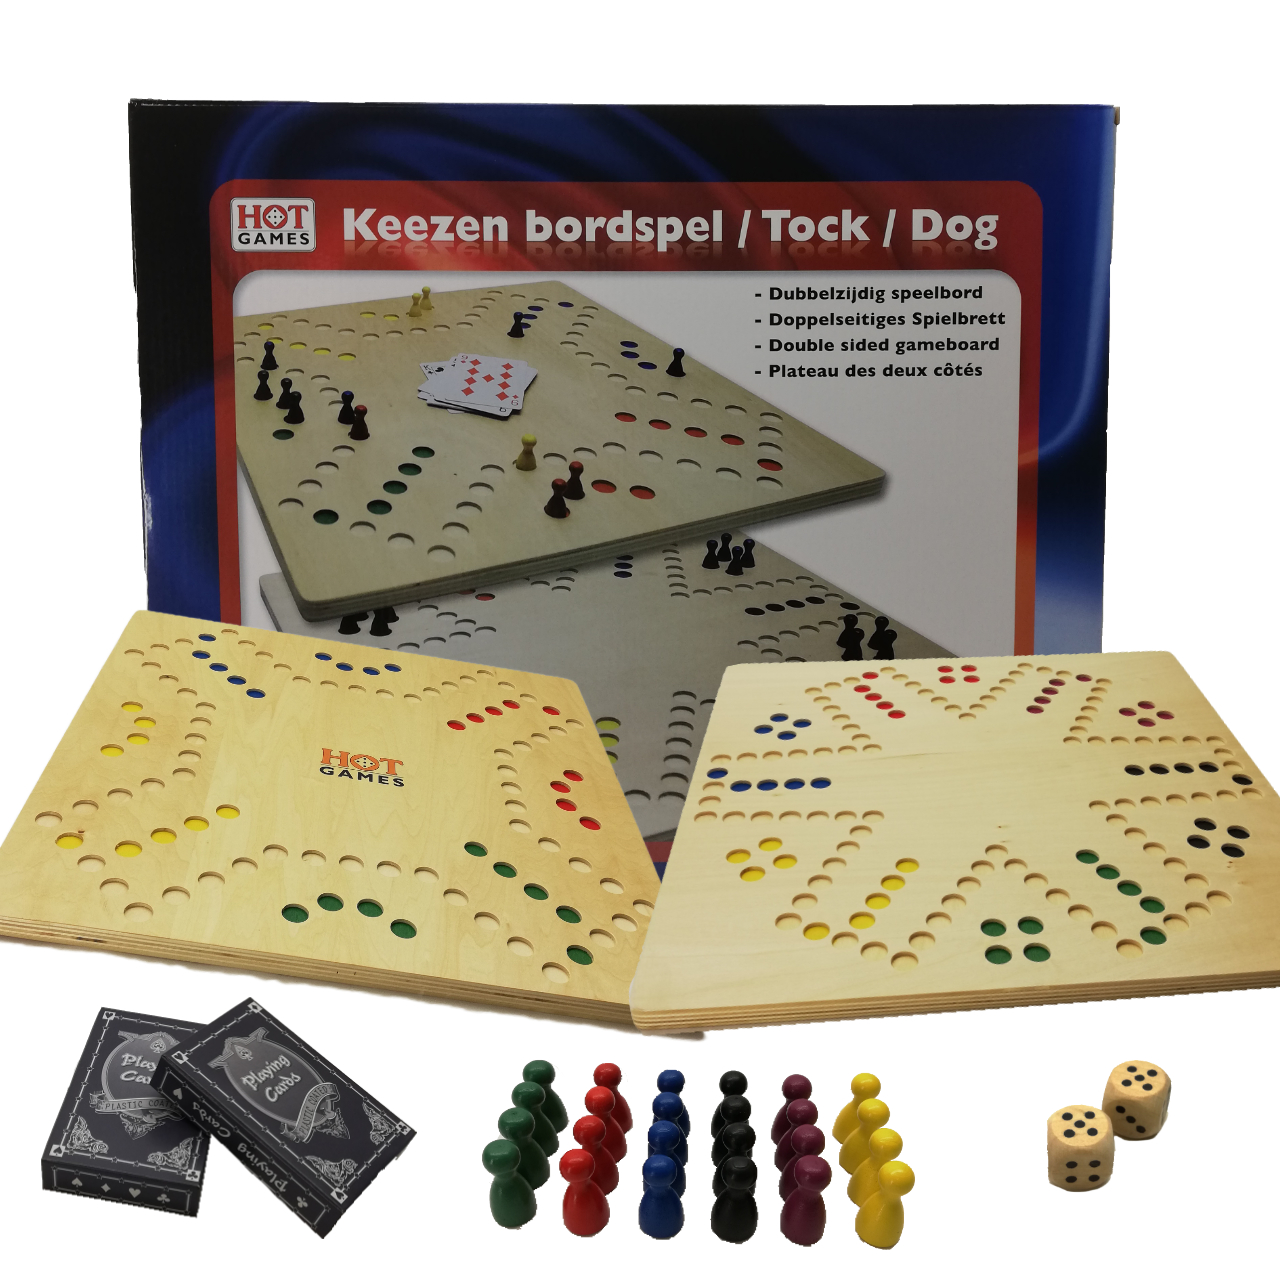 Keezen bordspel hout in doos 791210